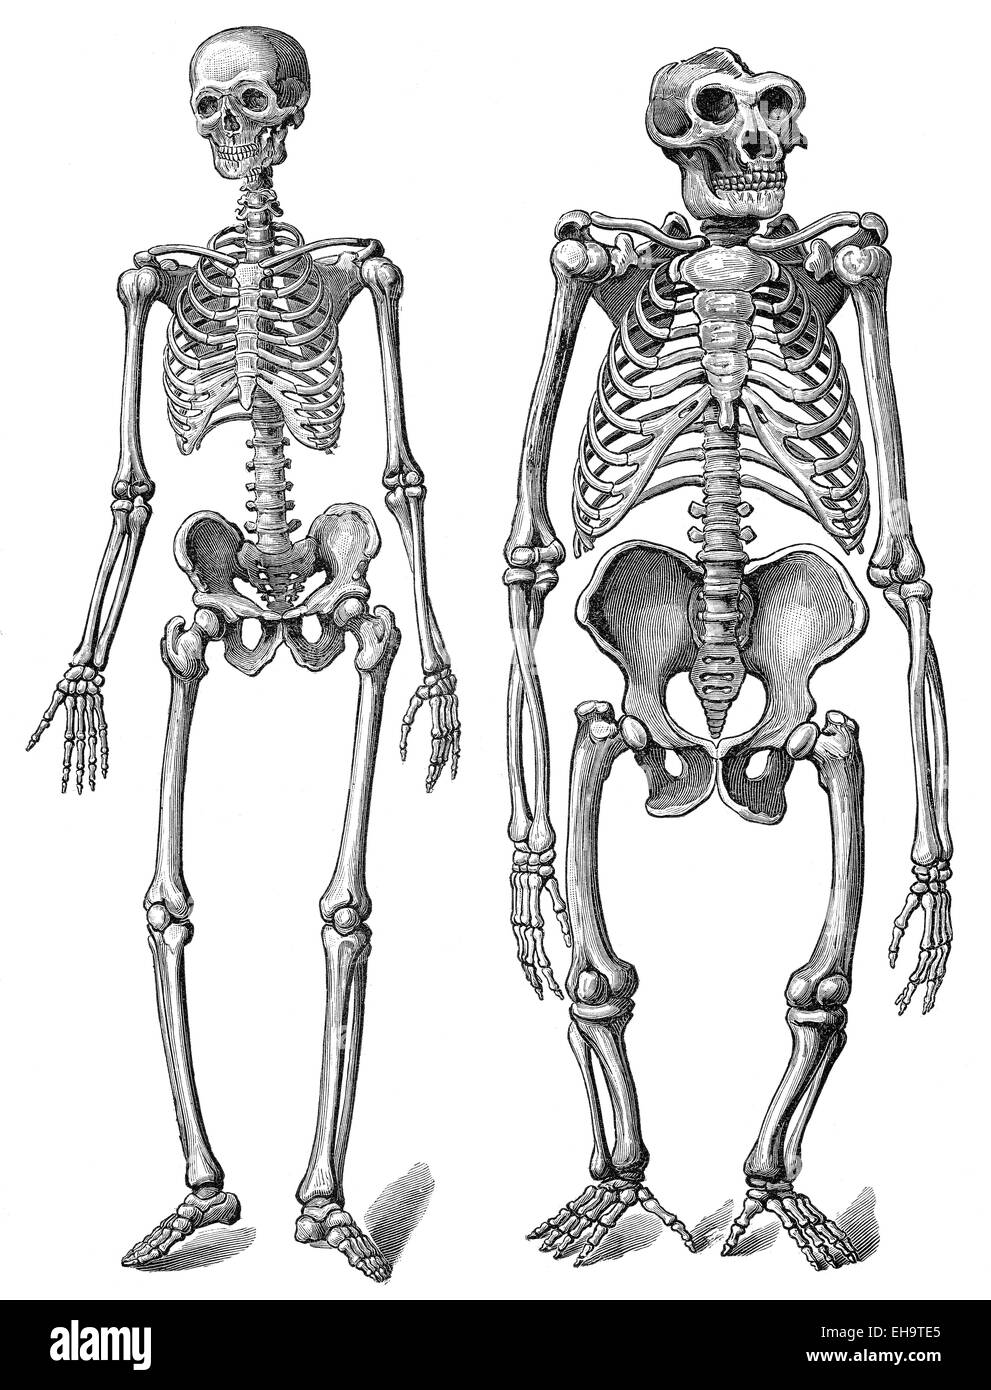 The Human Skeleton As Compared To A Gorilla Skeleton Anatomy Stock